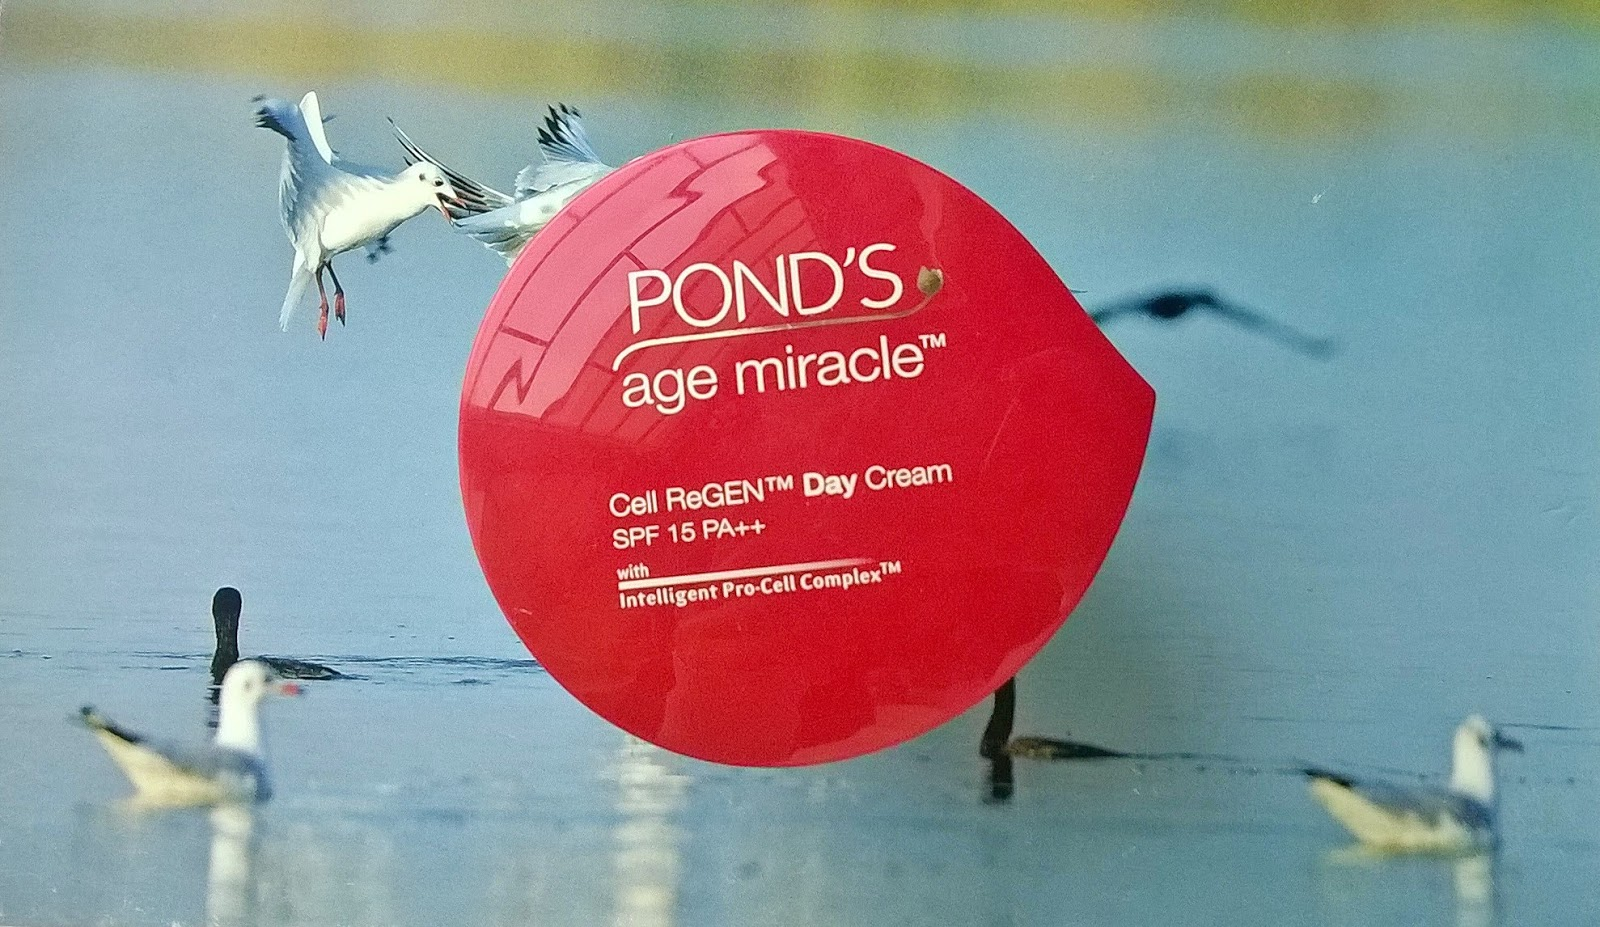 Beauty And Dewdrop Blog Pakistan Ponds Age Miracle Day Cream Jar 50 G Start On Anti Wrinkle Creams Thats Why I Gave This To My Mom Questioned Her About The Performance After A Couple Of Weeks